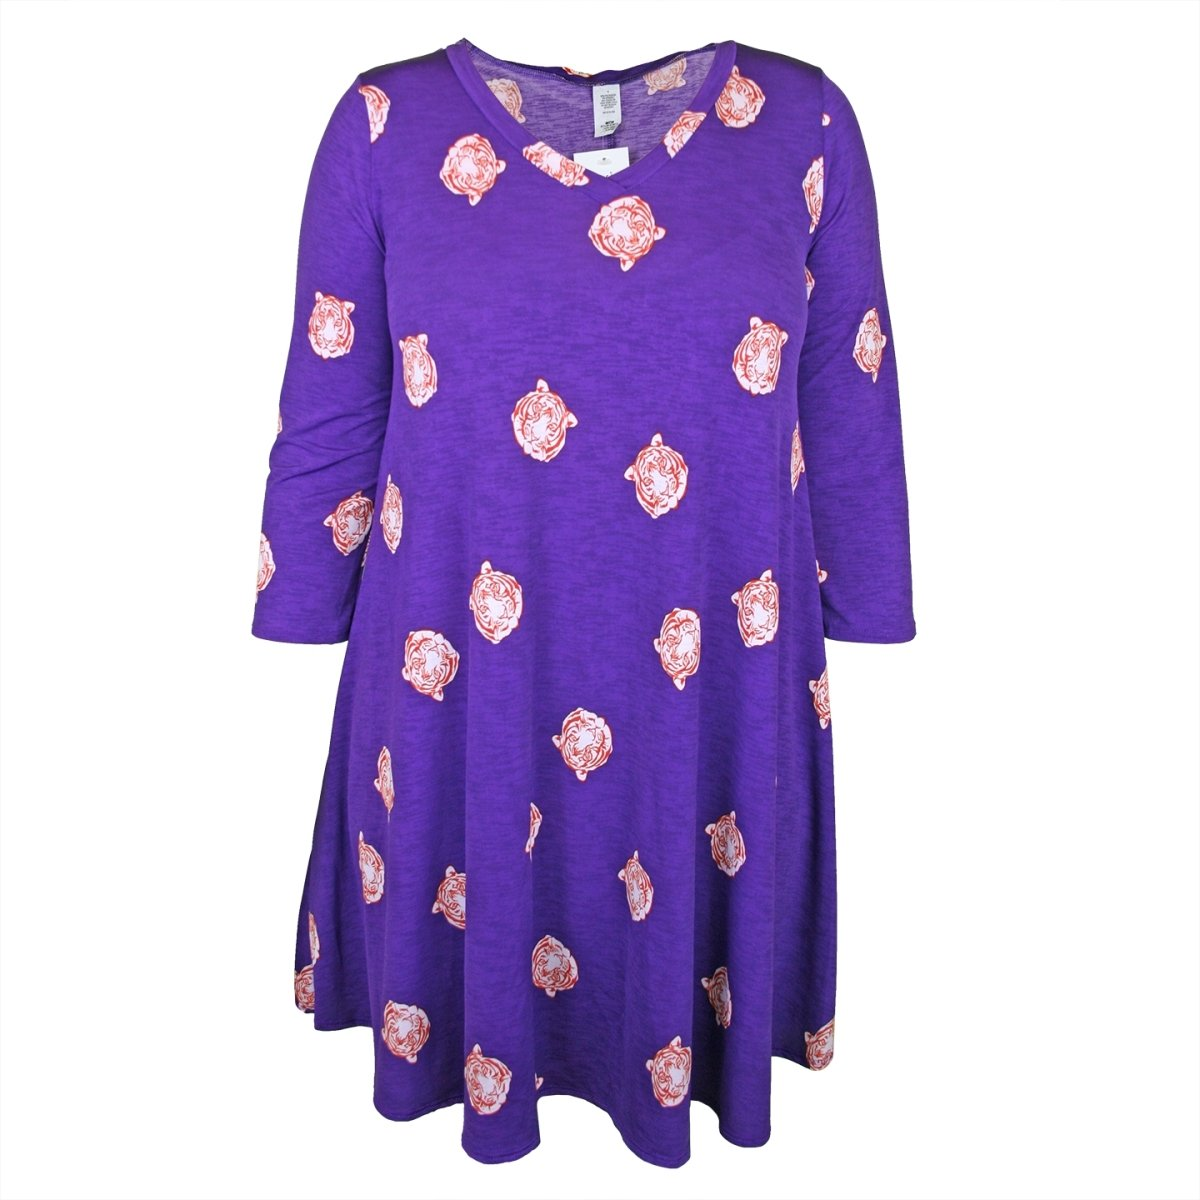 Tunic Long Sleeve Dress With Tiger Heads - Mr. Knickerbocker